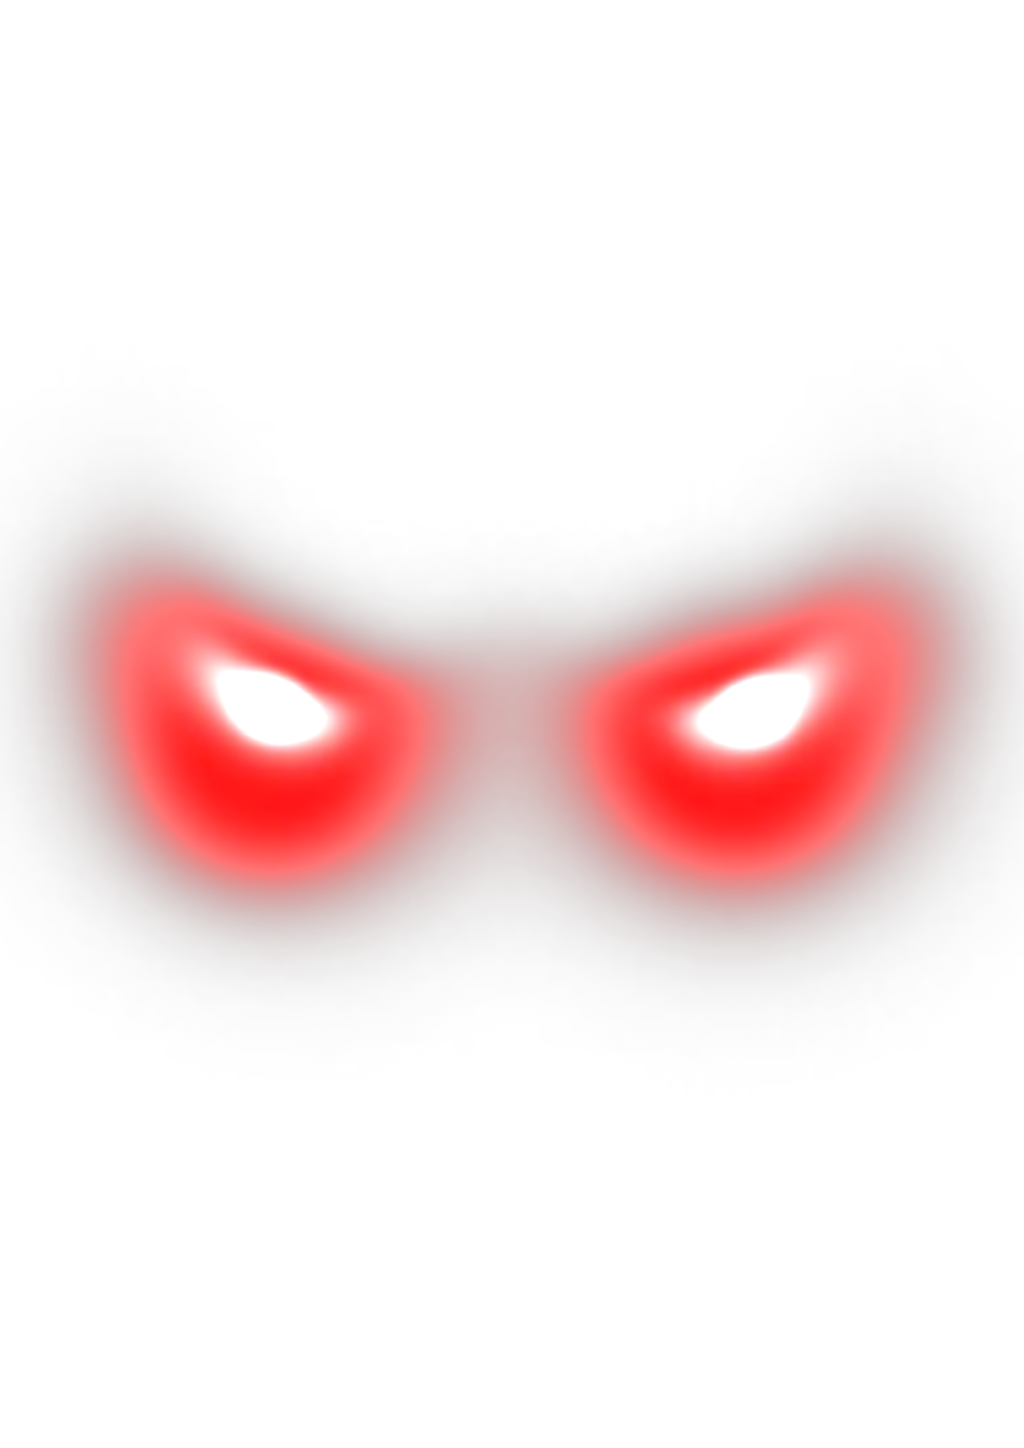 Glowing images in collection. Red eyes meme png clip freeuse